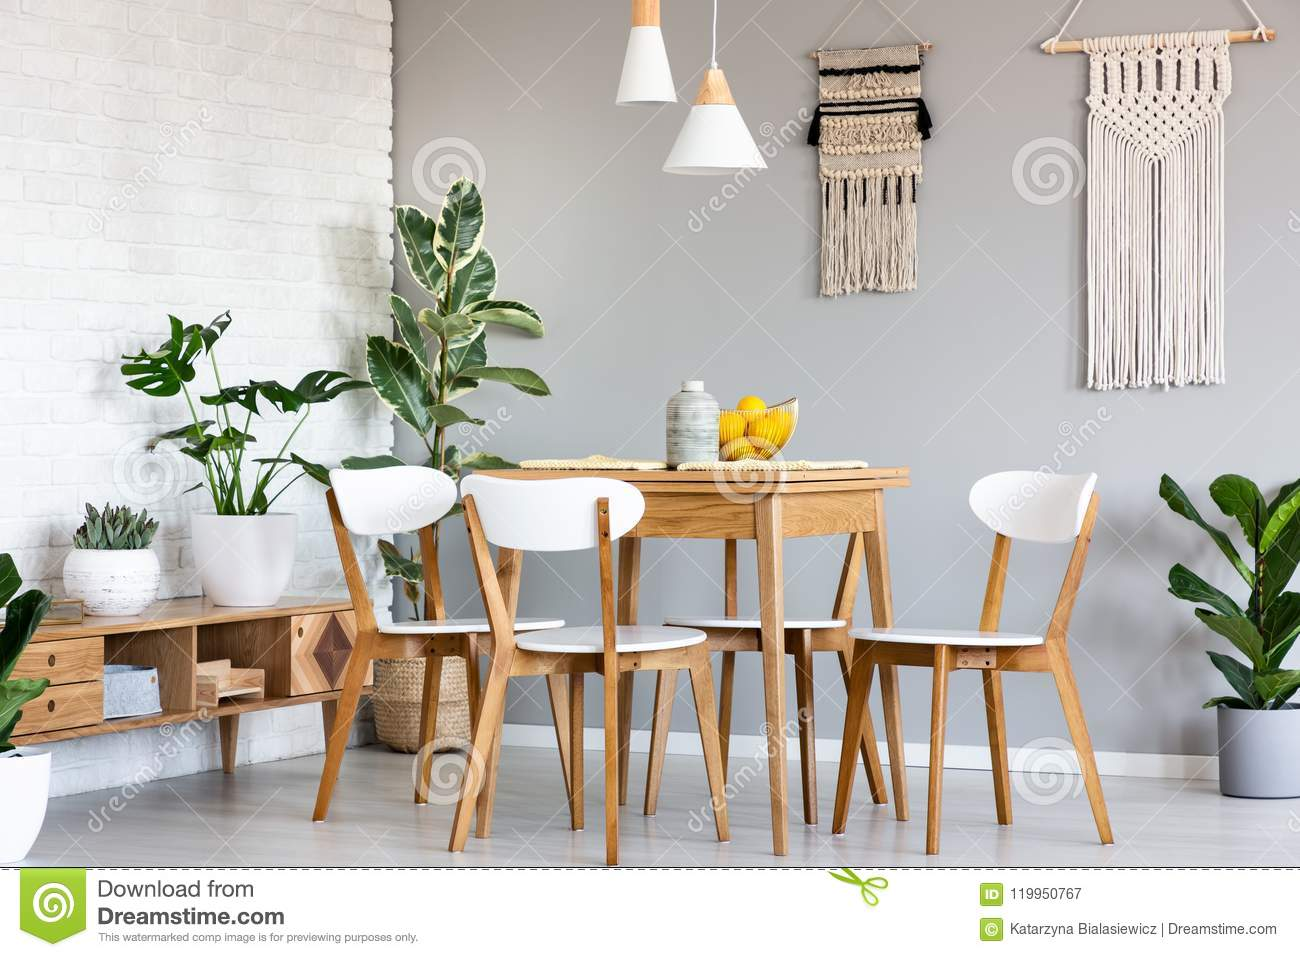 Macrame hanging on gray wall above wooden table and chairs in br